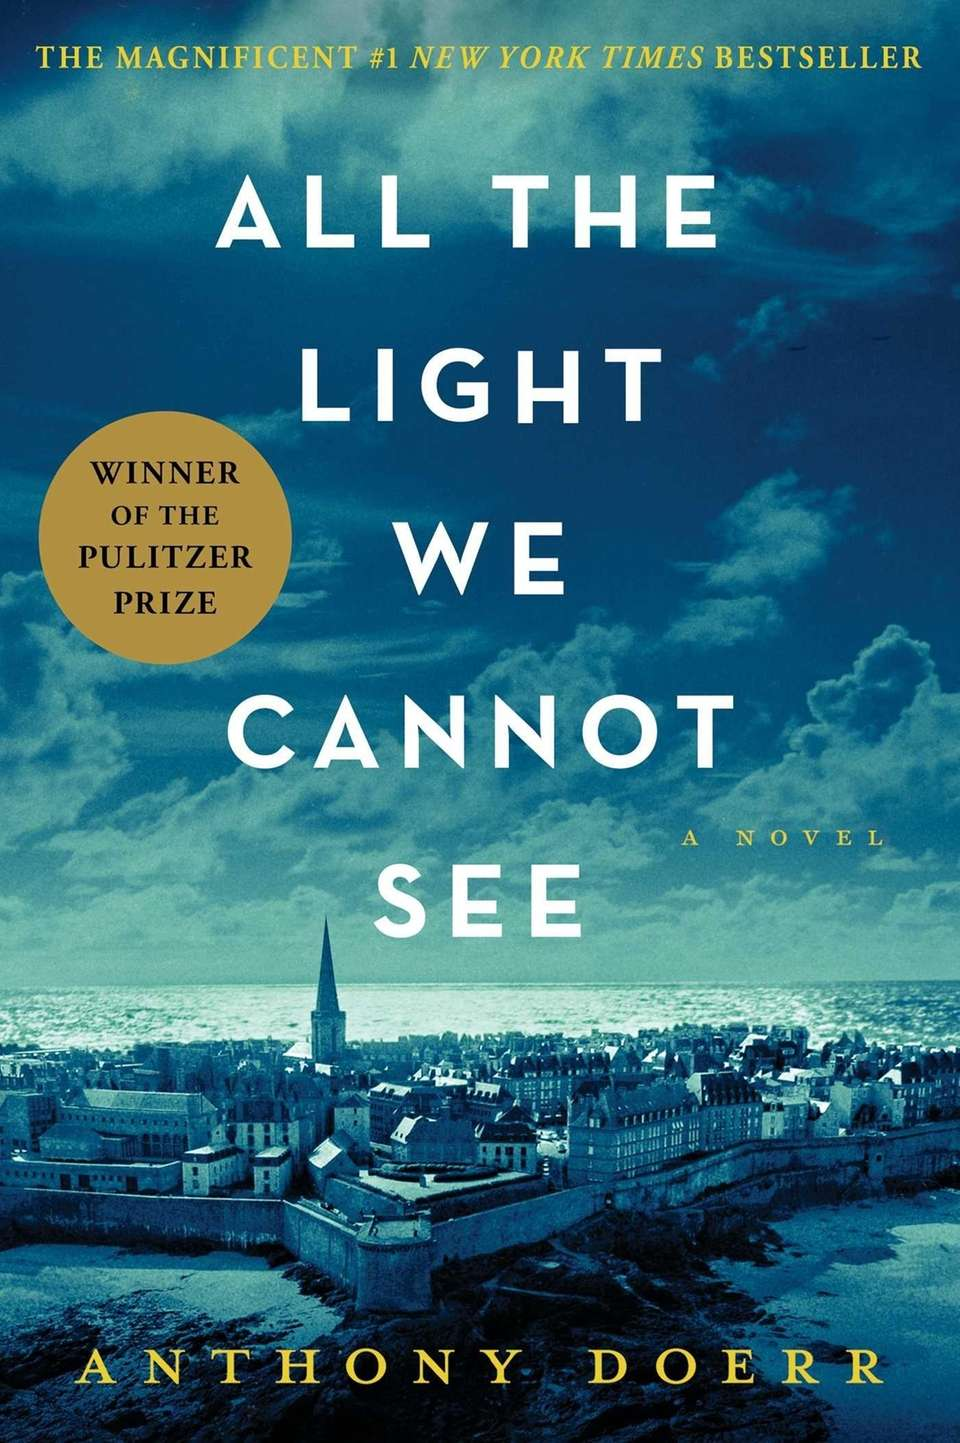 By Anthony Doerr, about a blind girl and